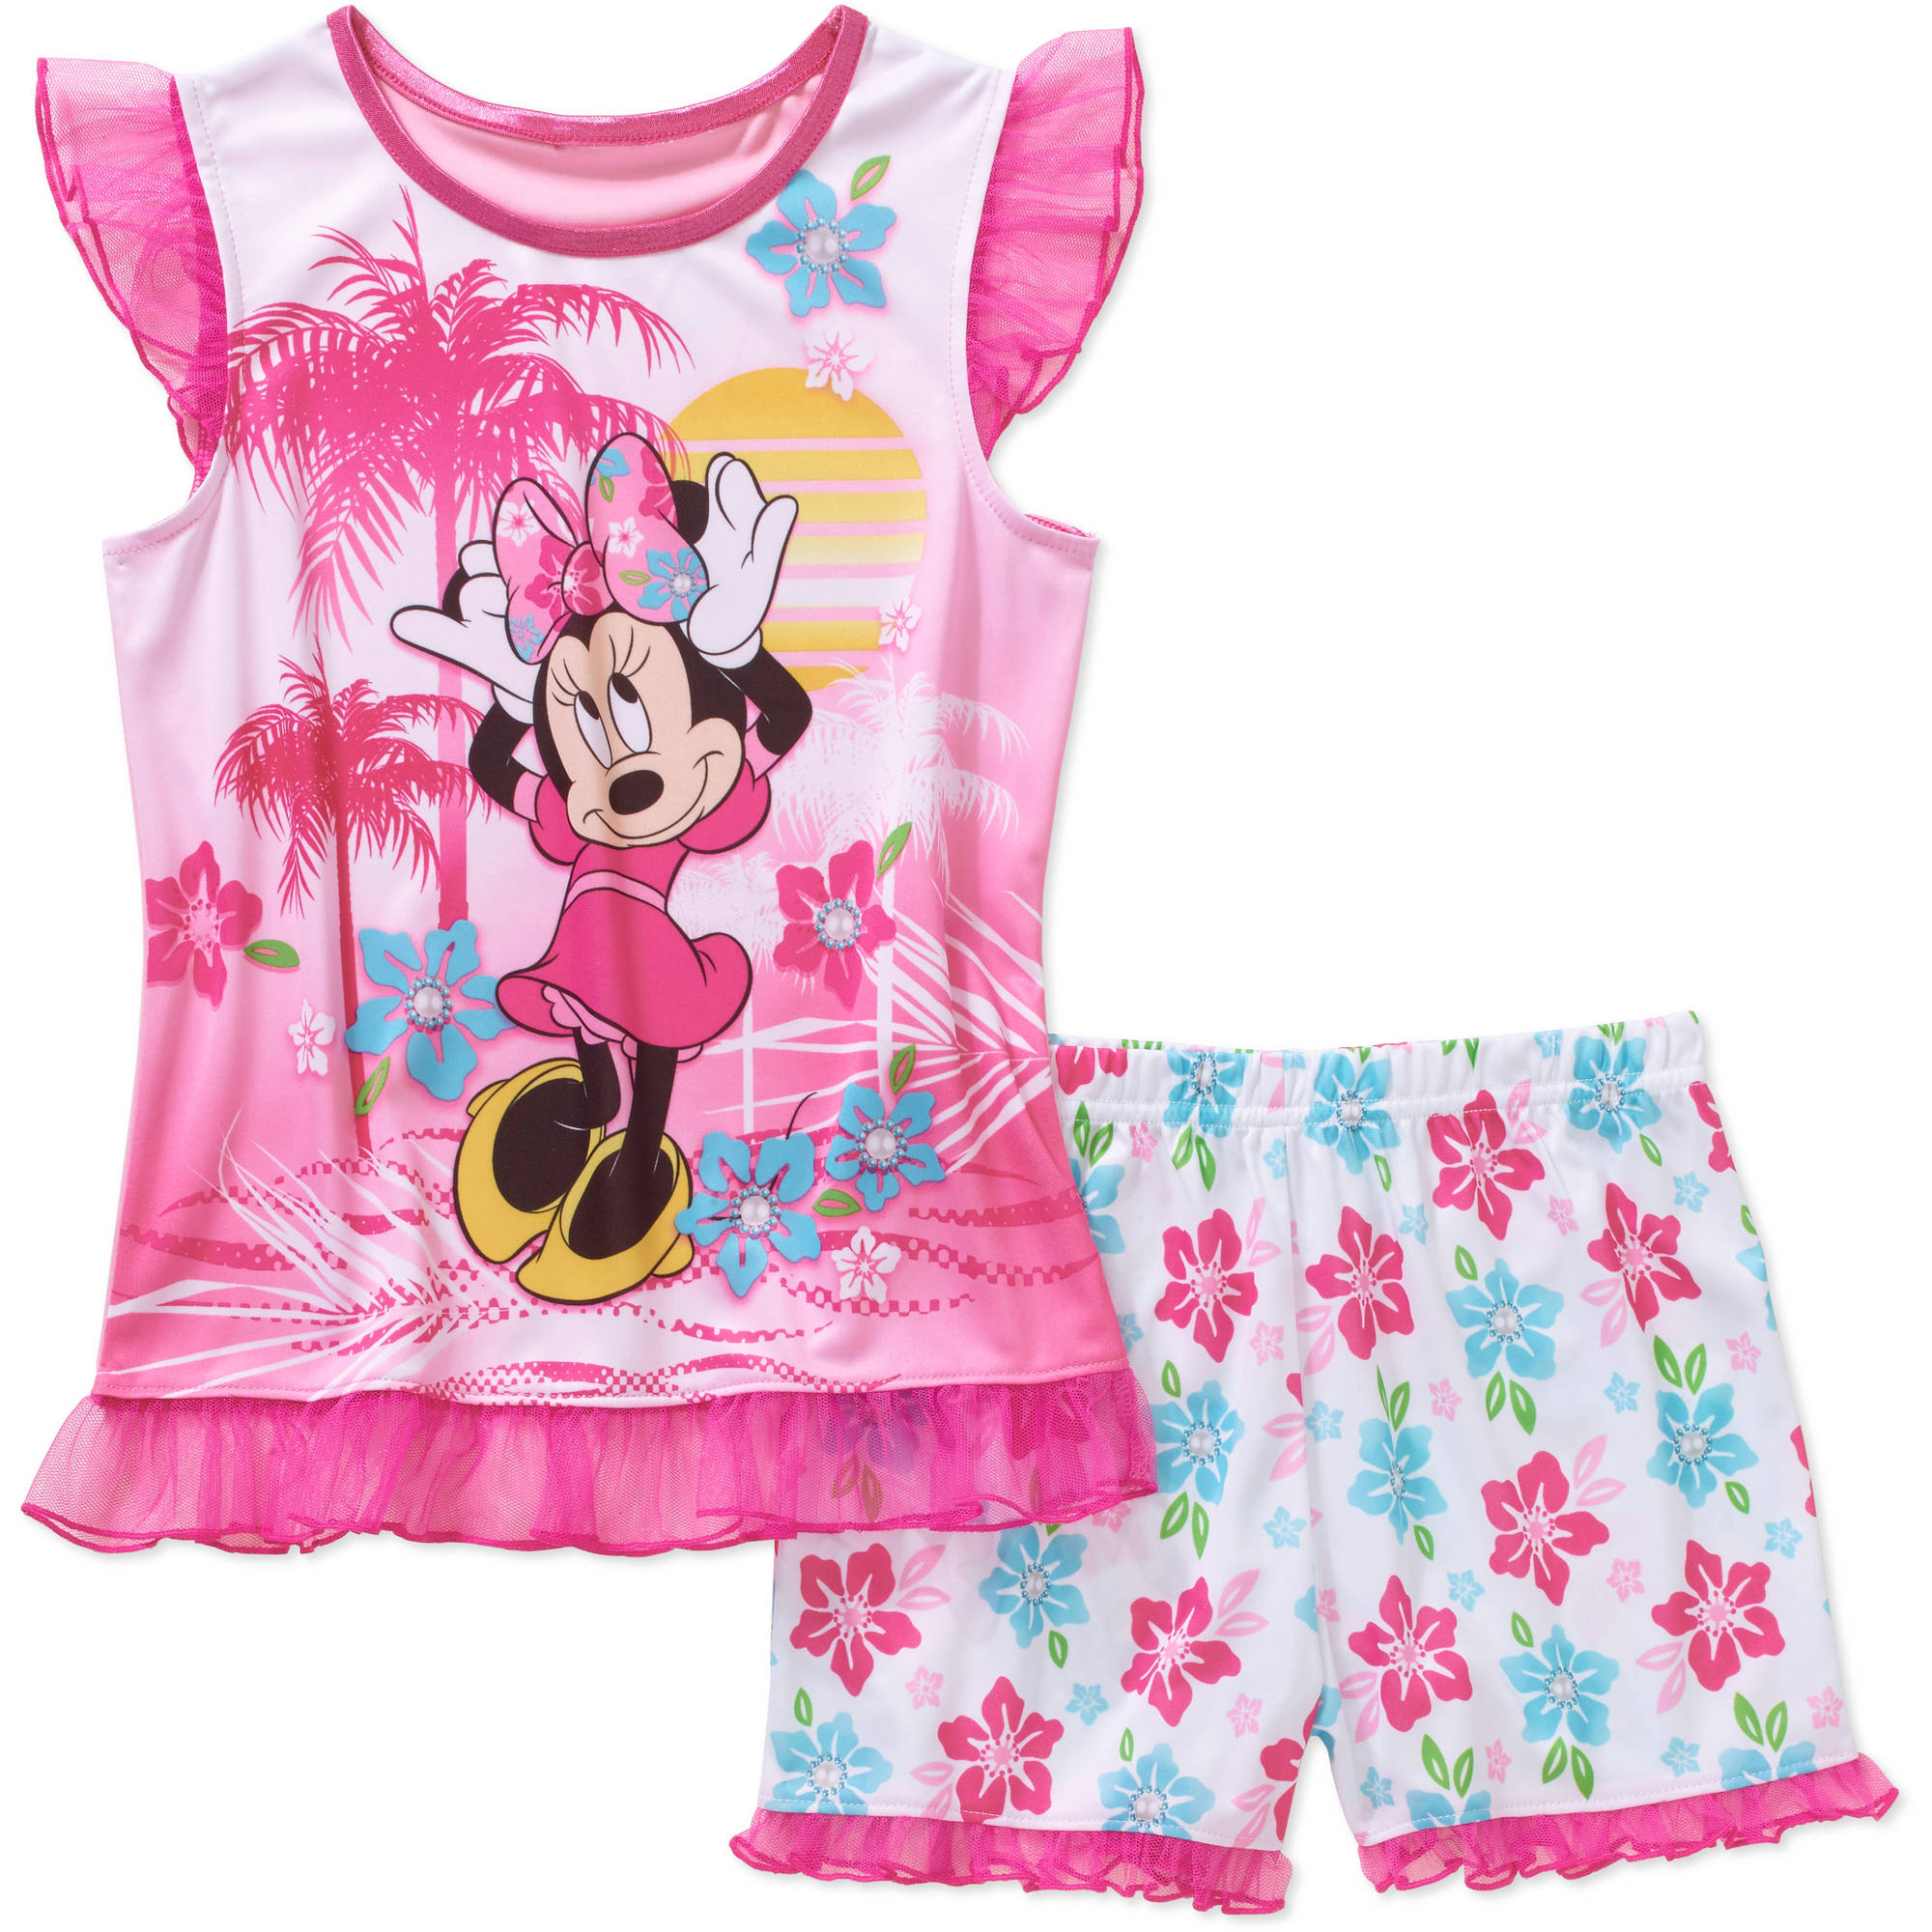 Tank Sleep Top and Shorts 2 Piece Pajma Set